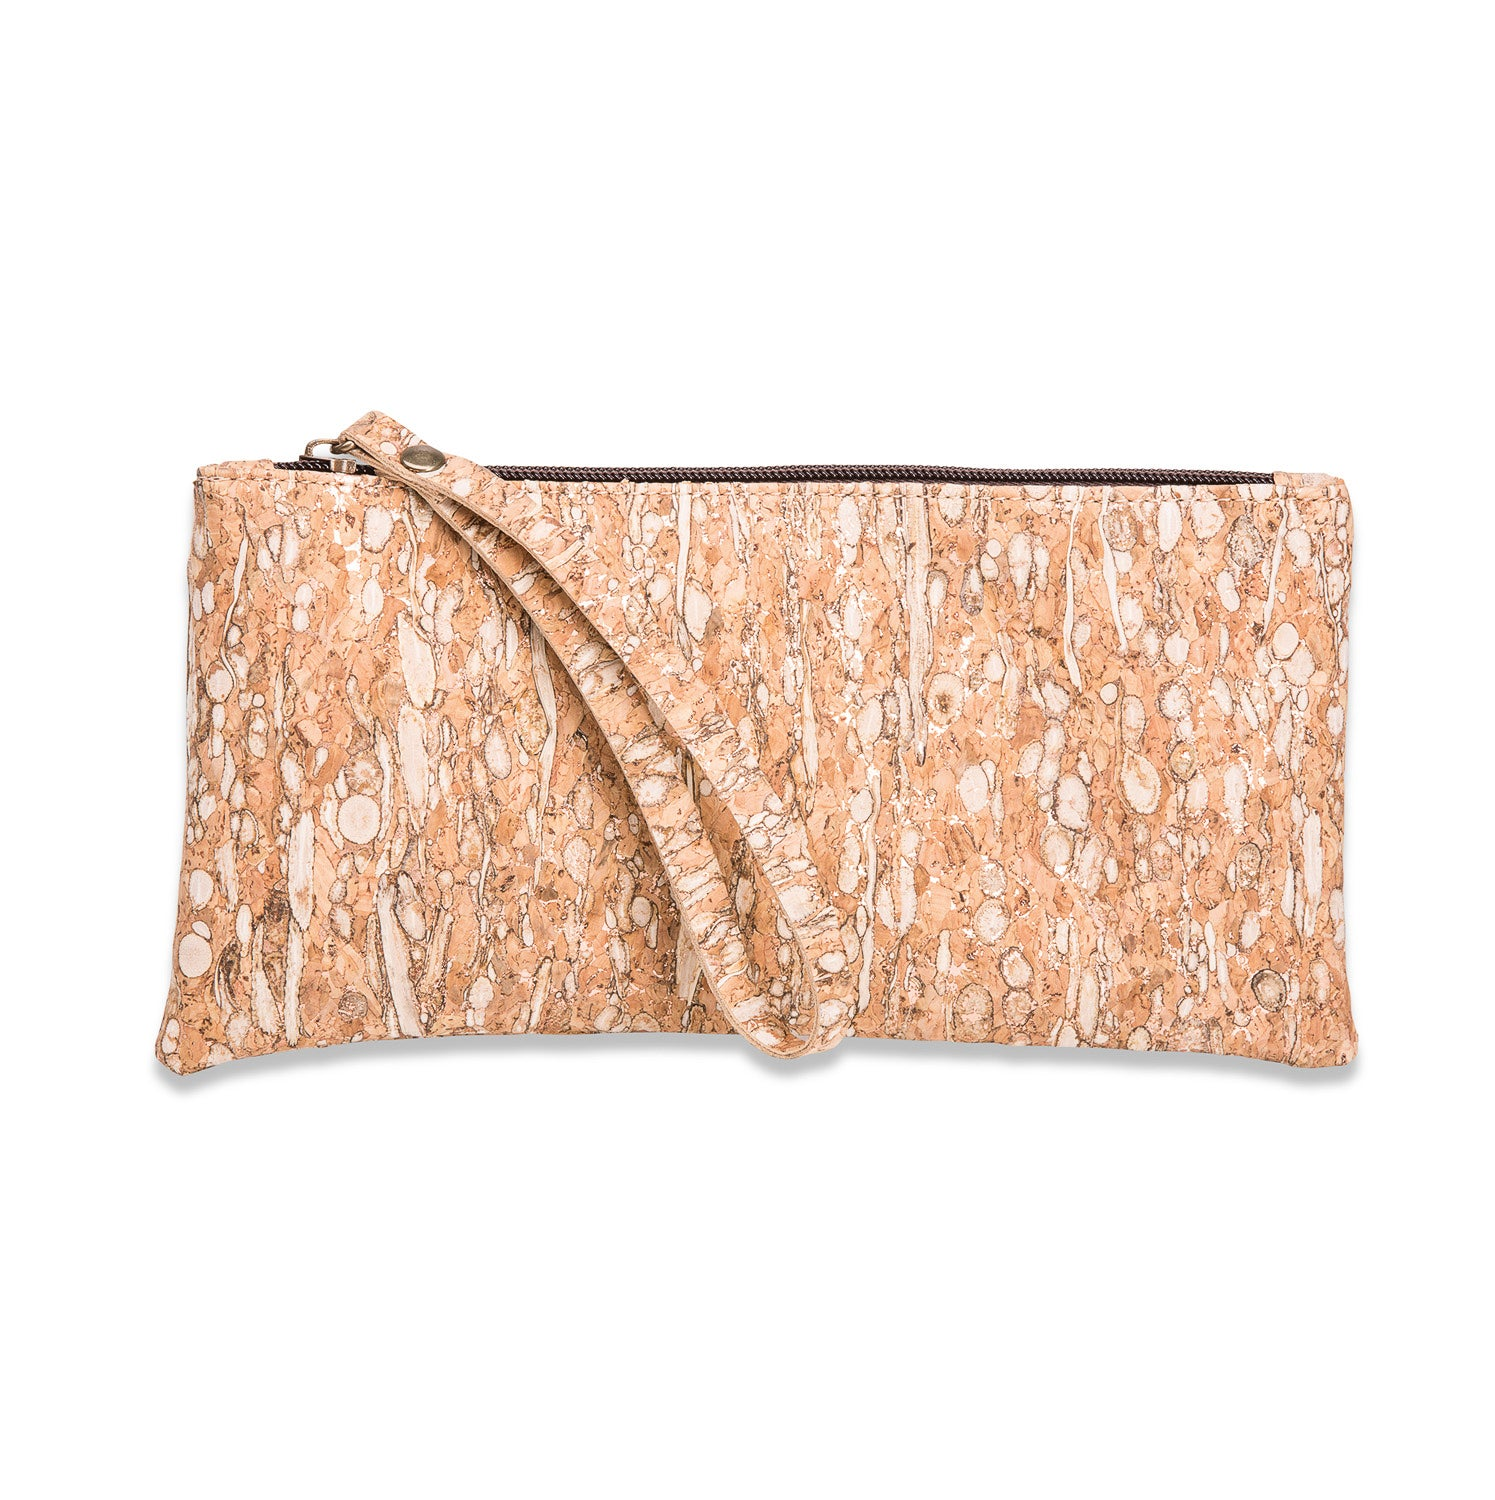 Cork wristlet purse FENNEL